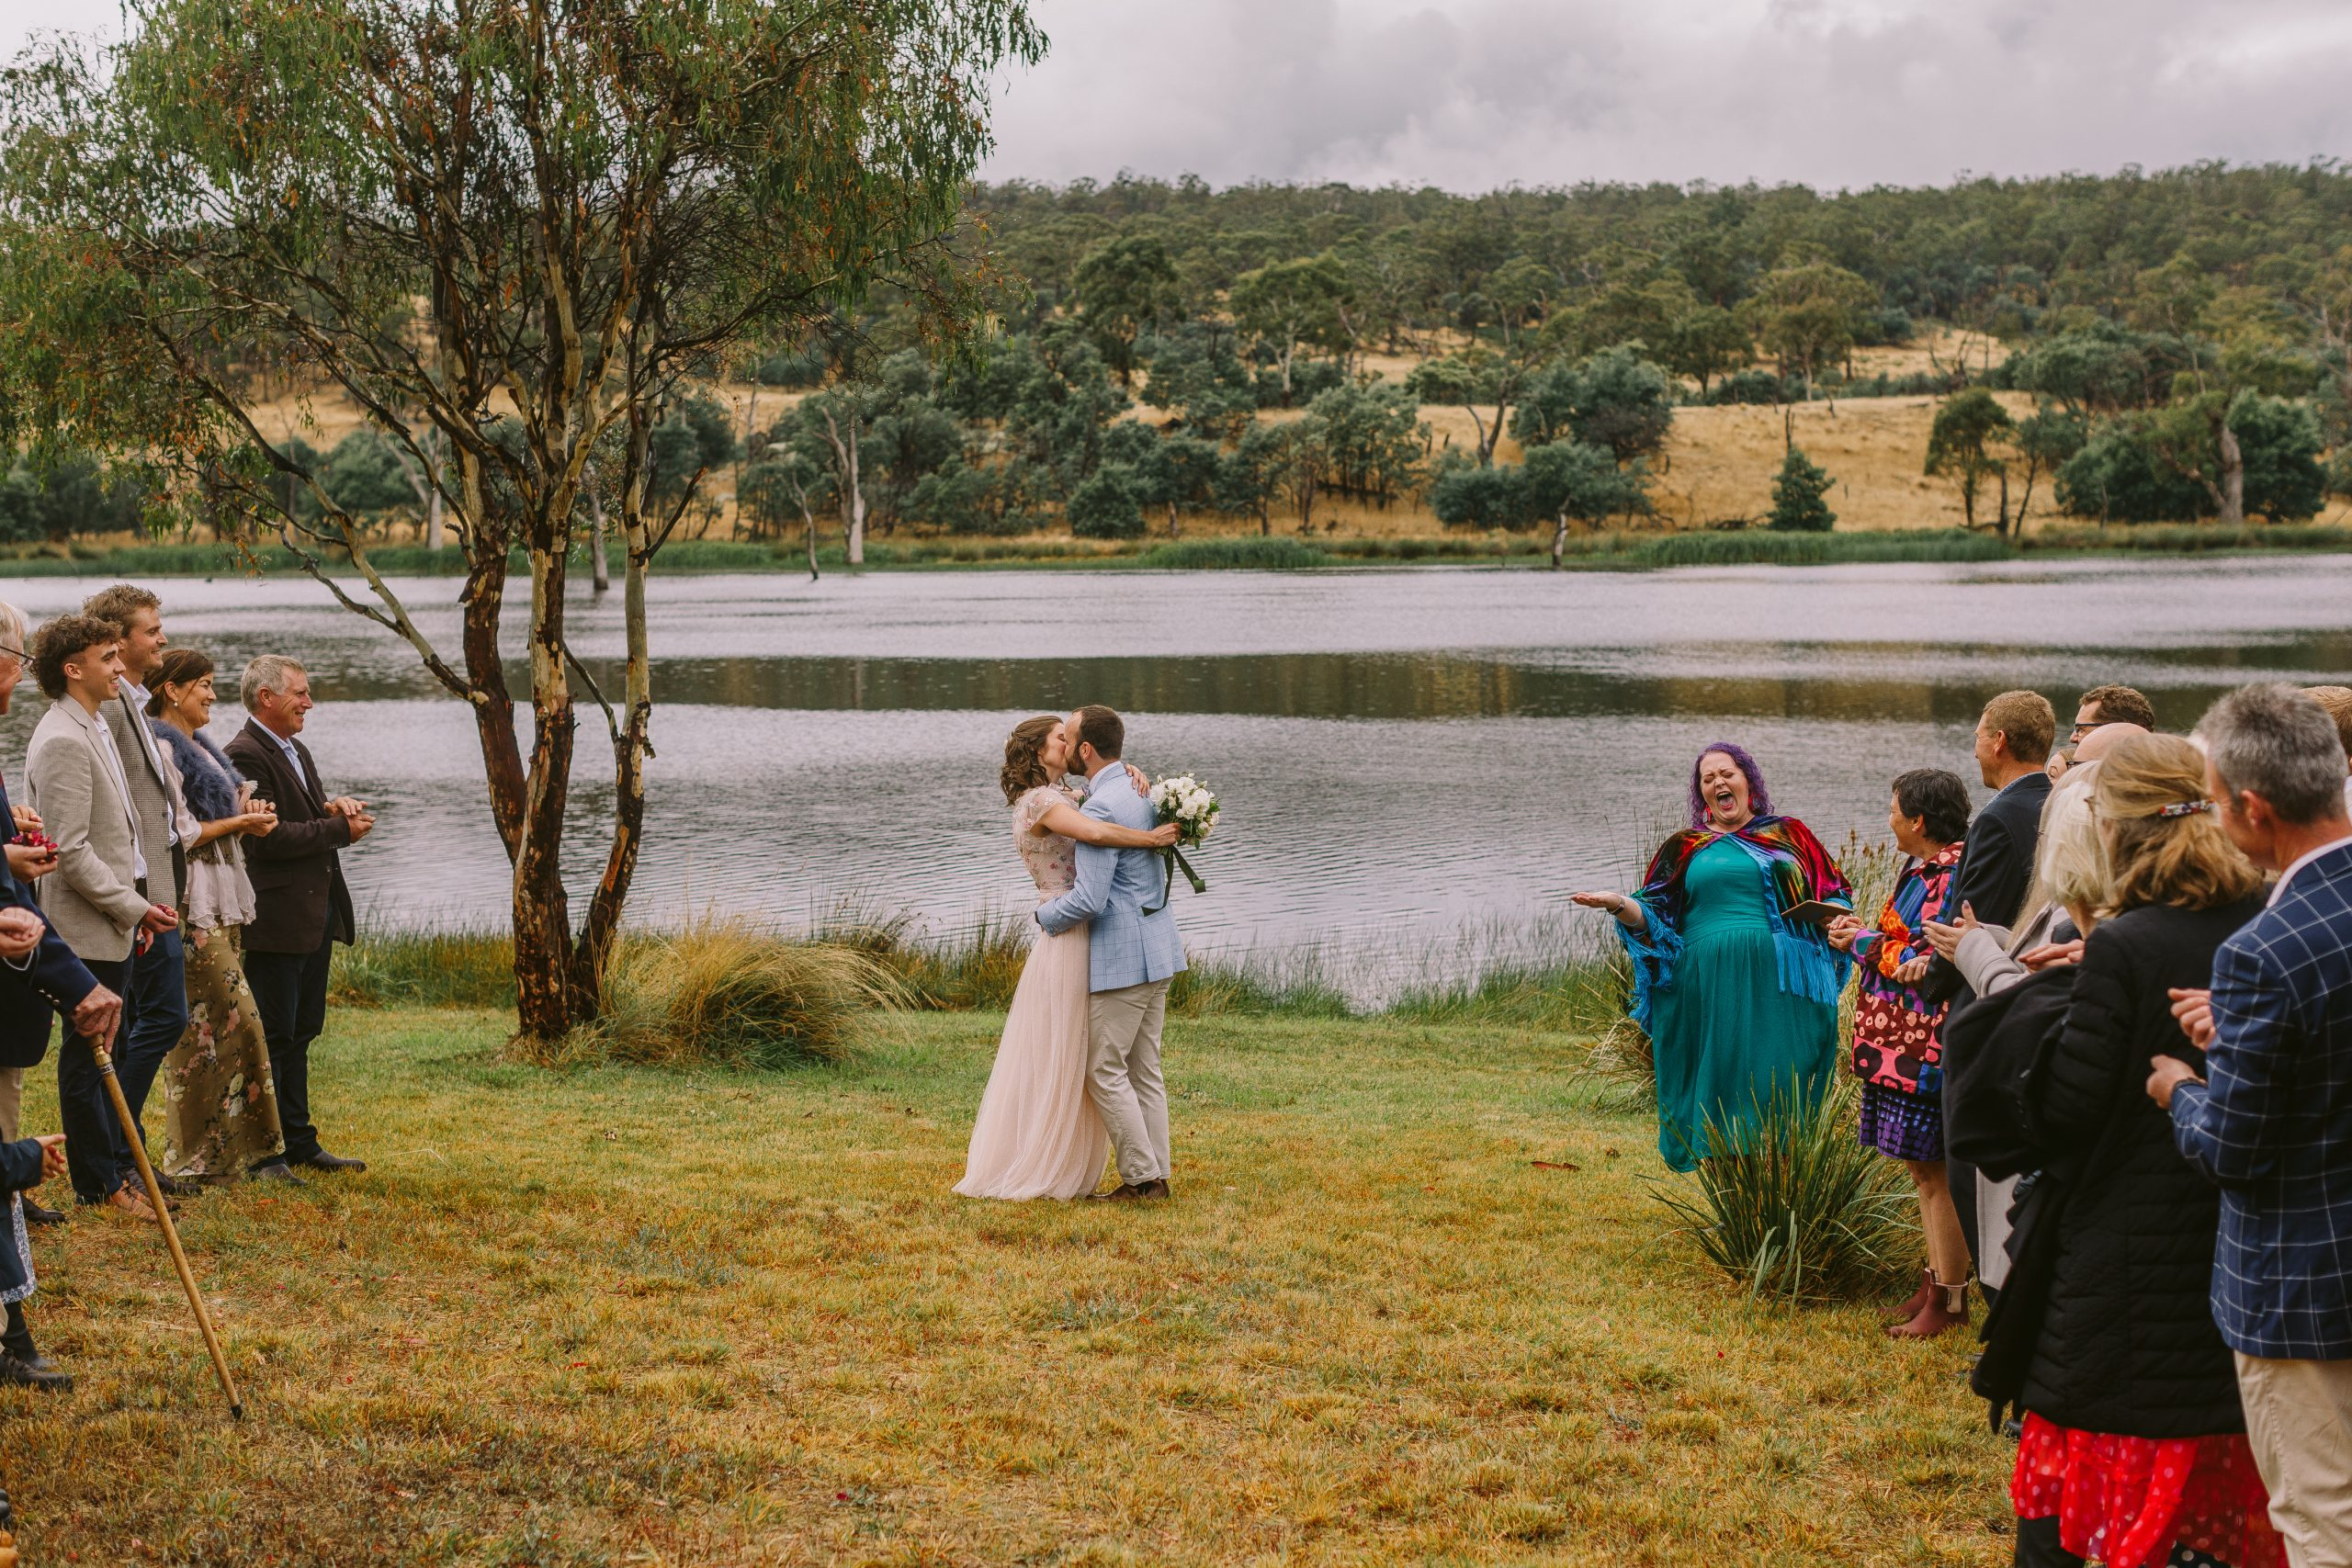 a newlywed couple kiss in front of a lake while their guests stand in two rows either side of them, looking on (and ready to throw flower petals as they walk back up between the rows). A brightly coloured celebrant with purple hair stands to the side making an overenthusiastic face as she declares them newly married!